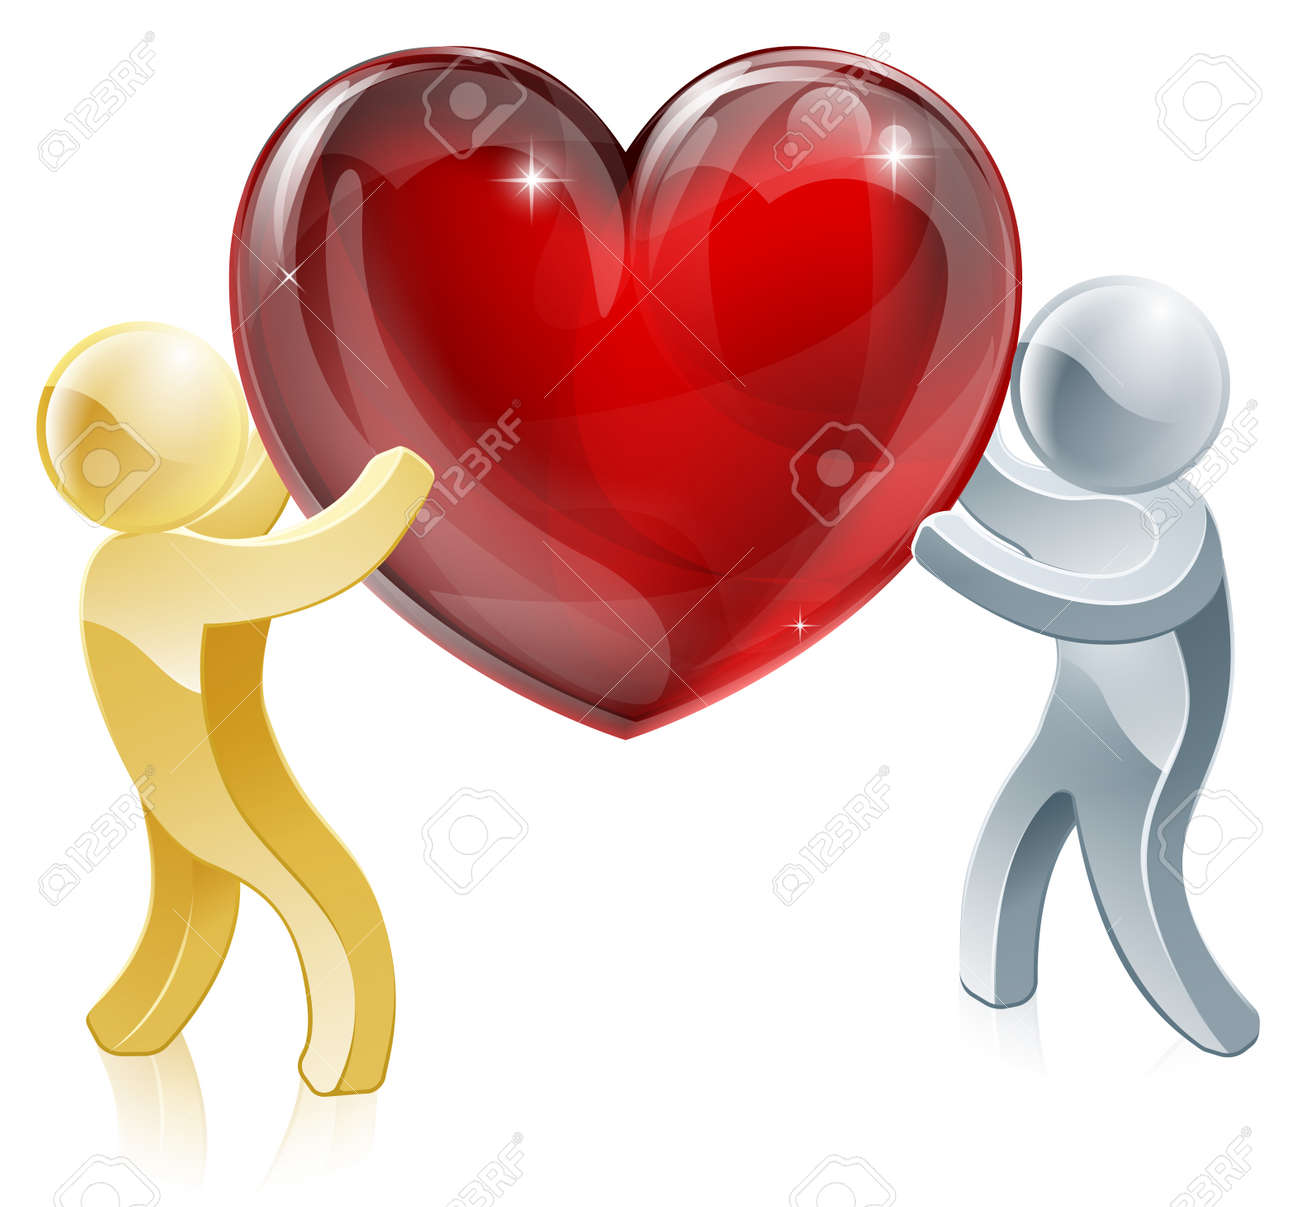 Holding heart love symbol illustration of two people mascots holding heart love symbol illustration of two people mascots holding a big heart stock vector buycottarizona Image collections